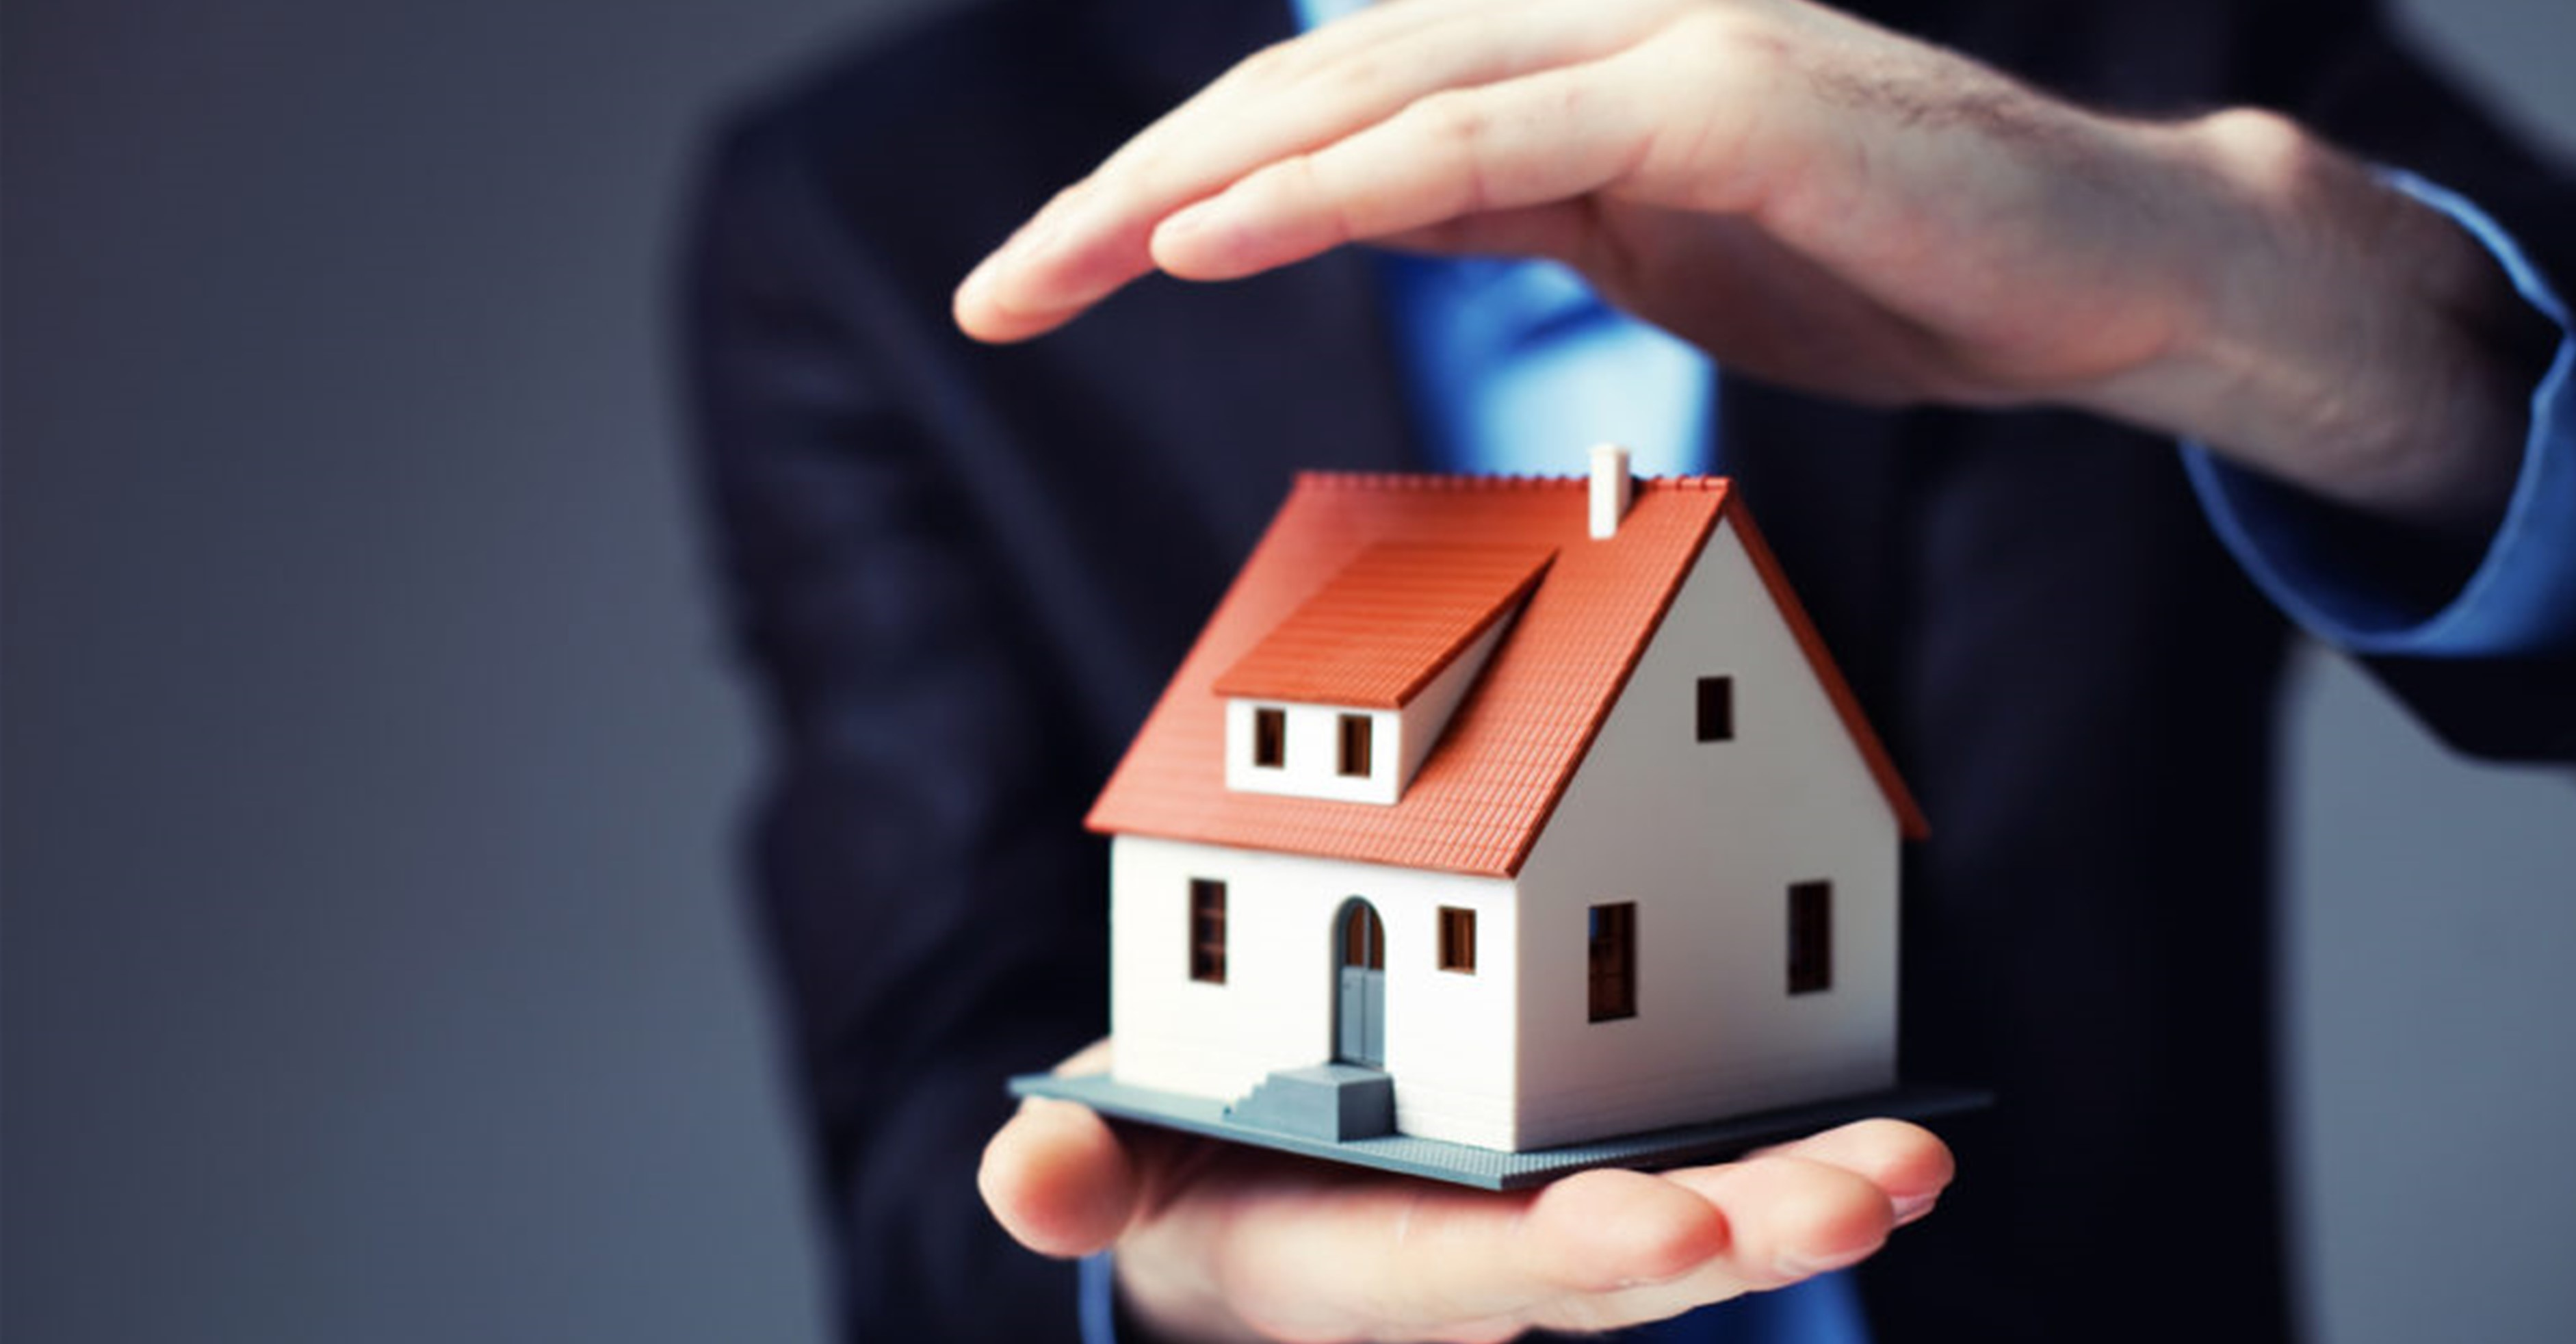 Does Your Home Insurance Cover Everything?